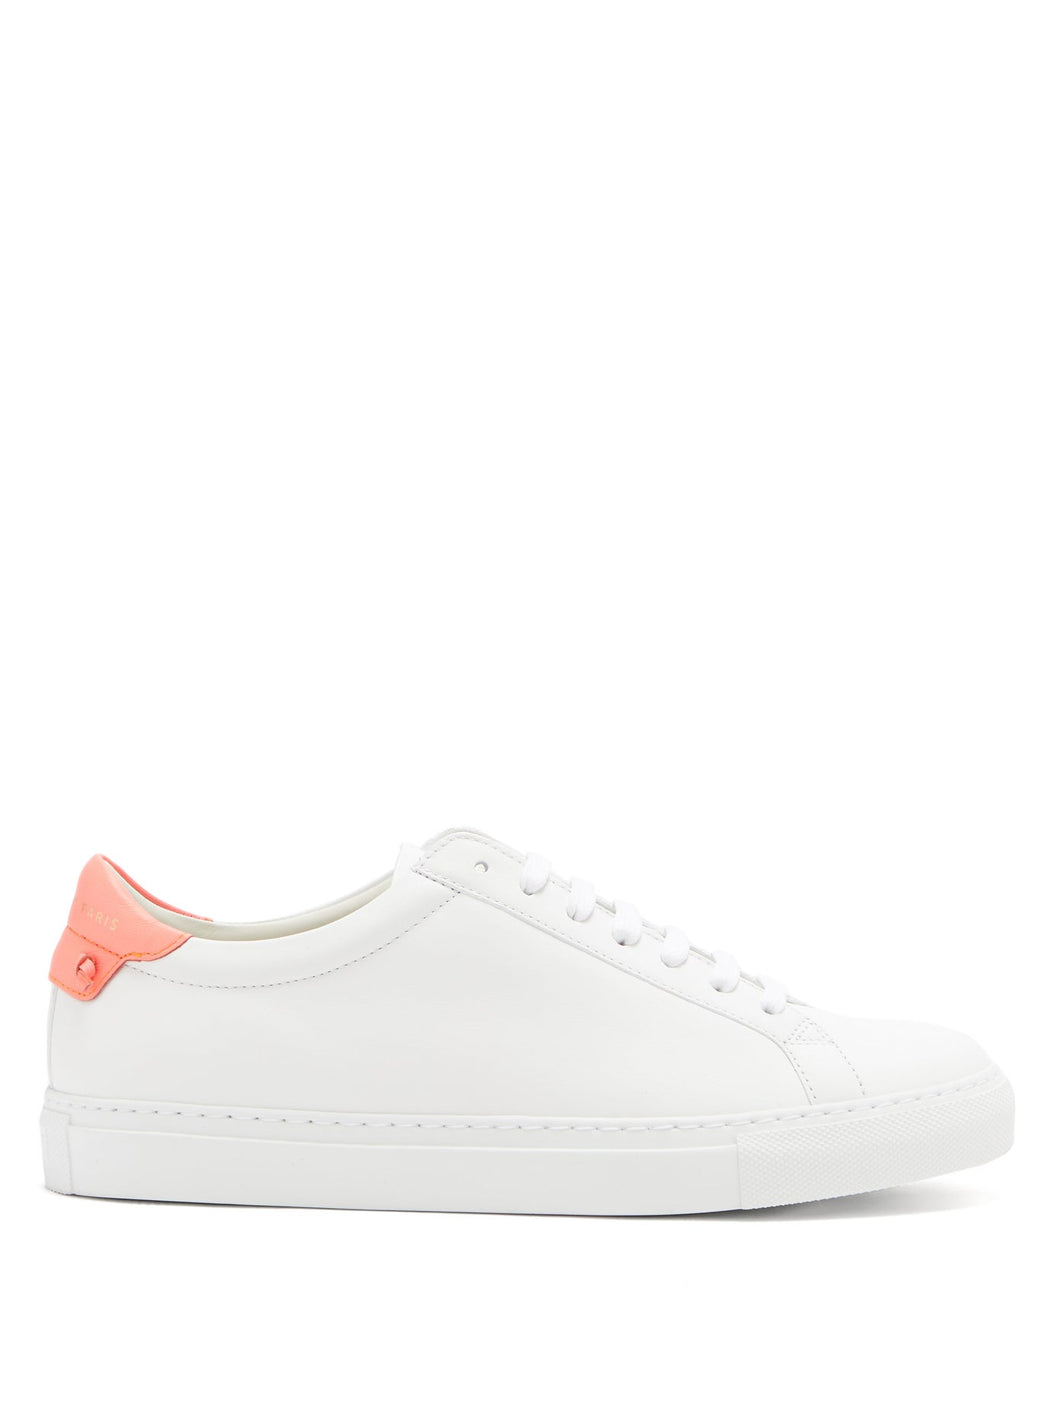 Urban Street leather trainers